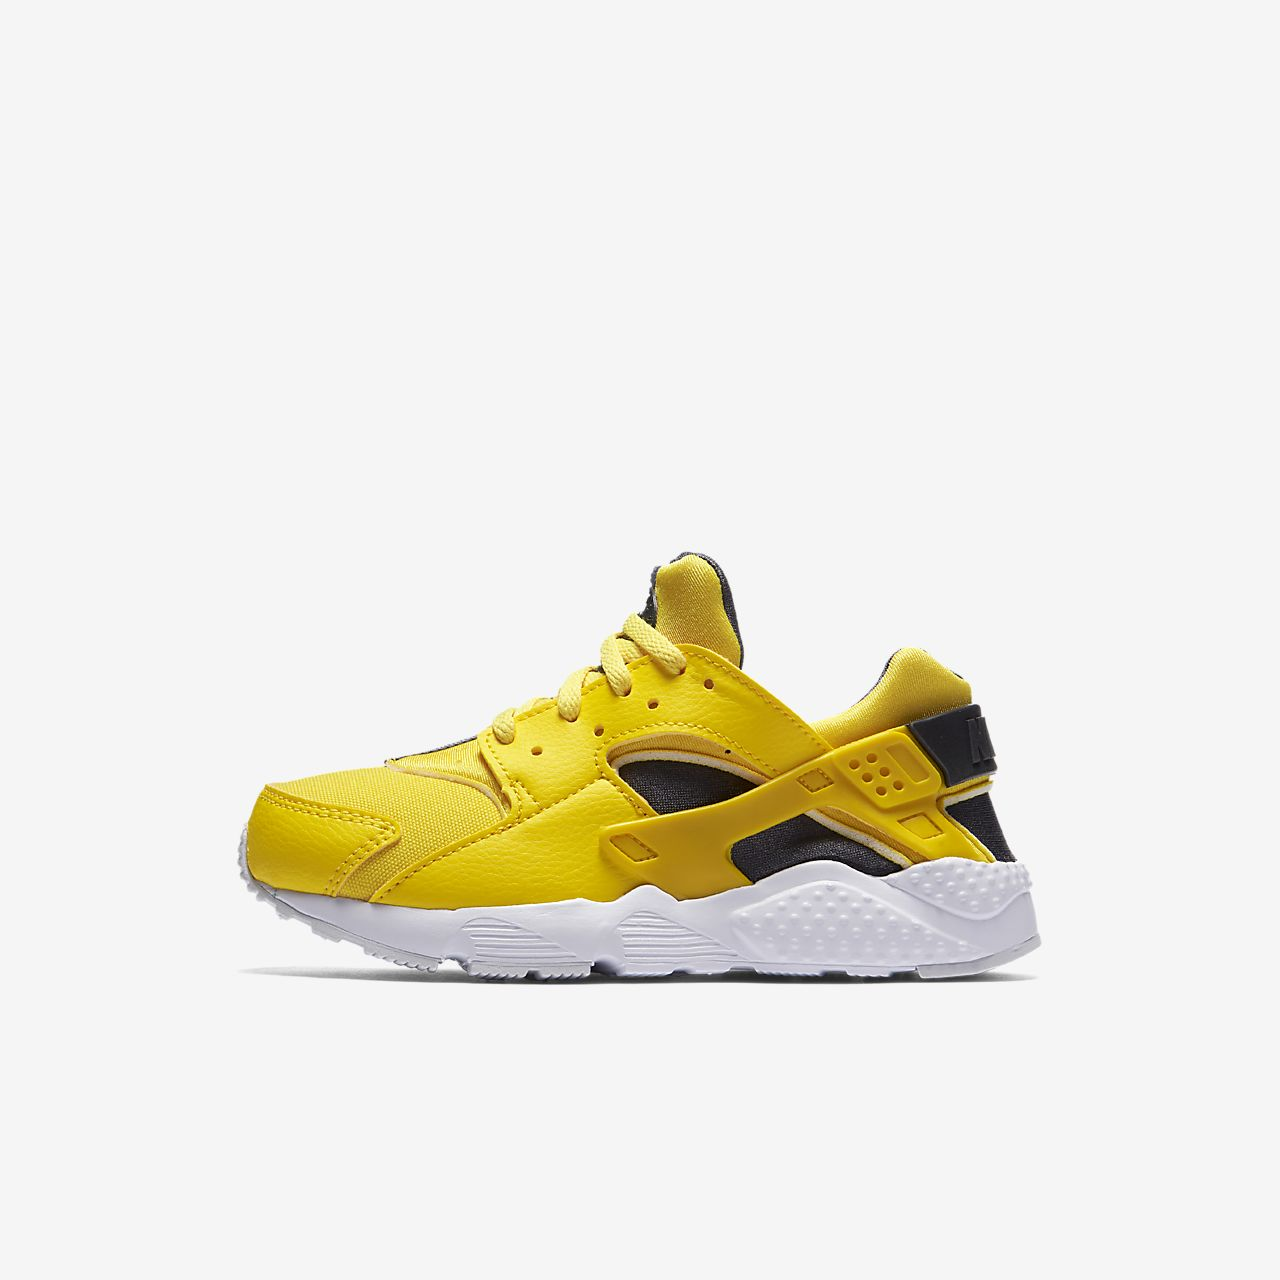 ... Nike Huarache Little Kids' Shoe